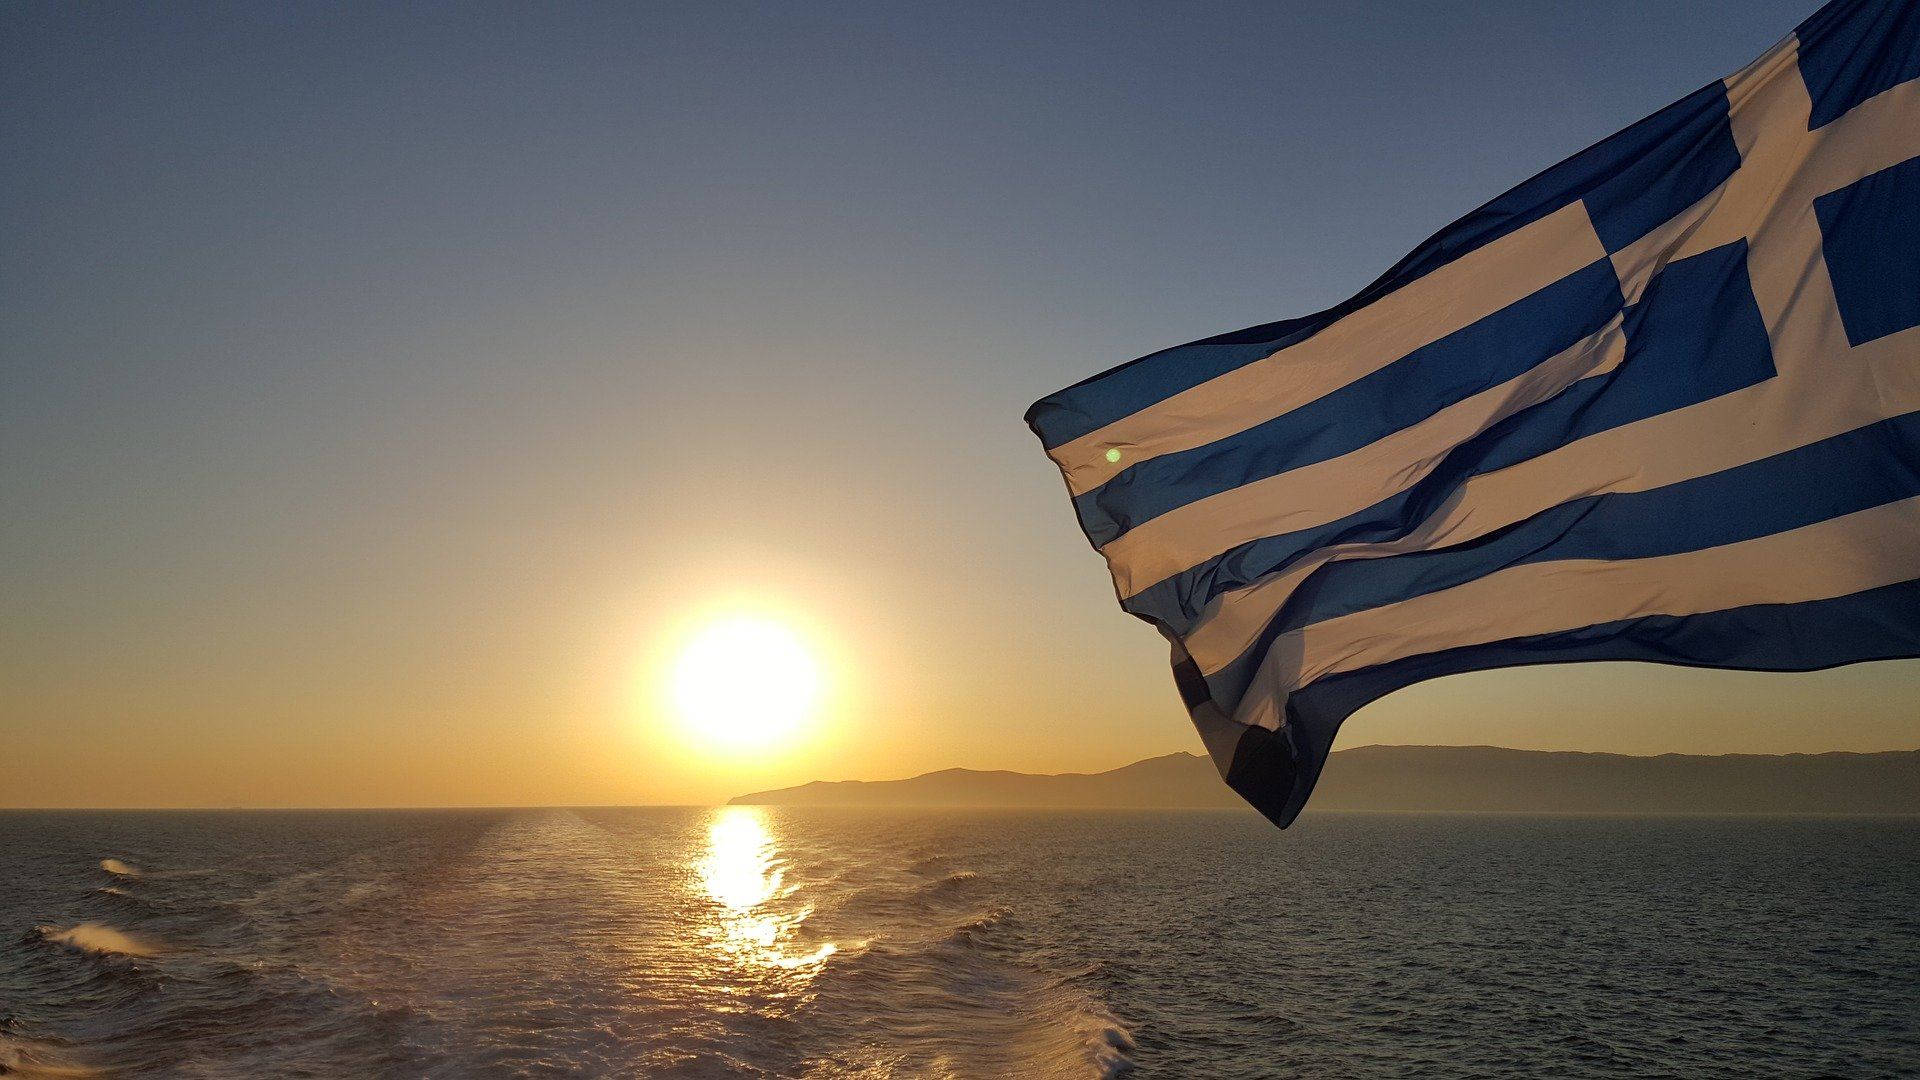 The globe turns Greek for a day